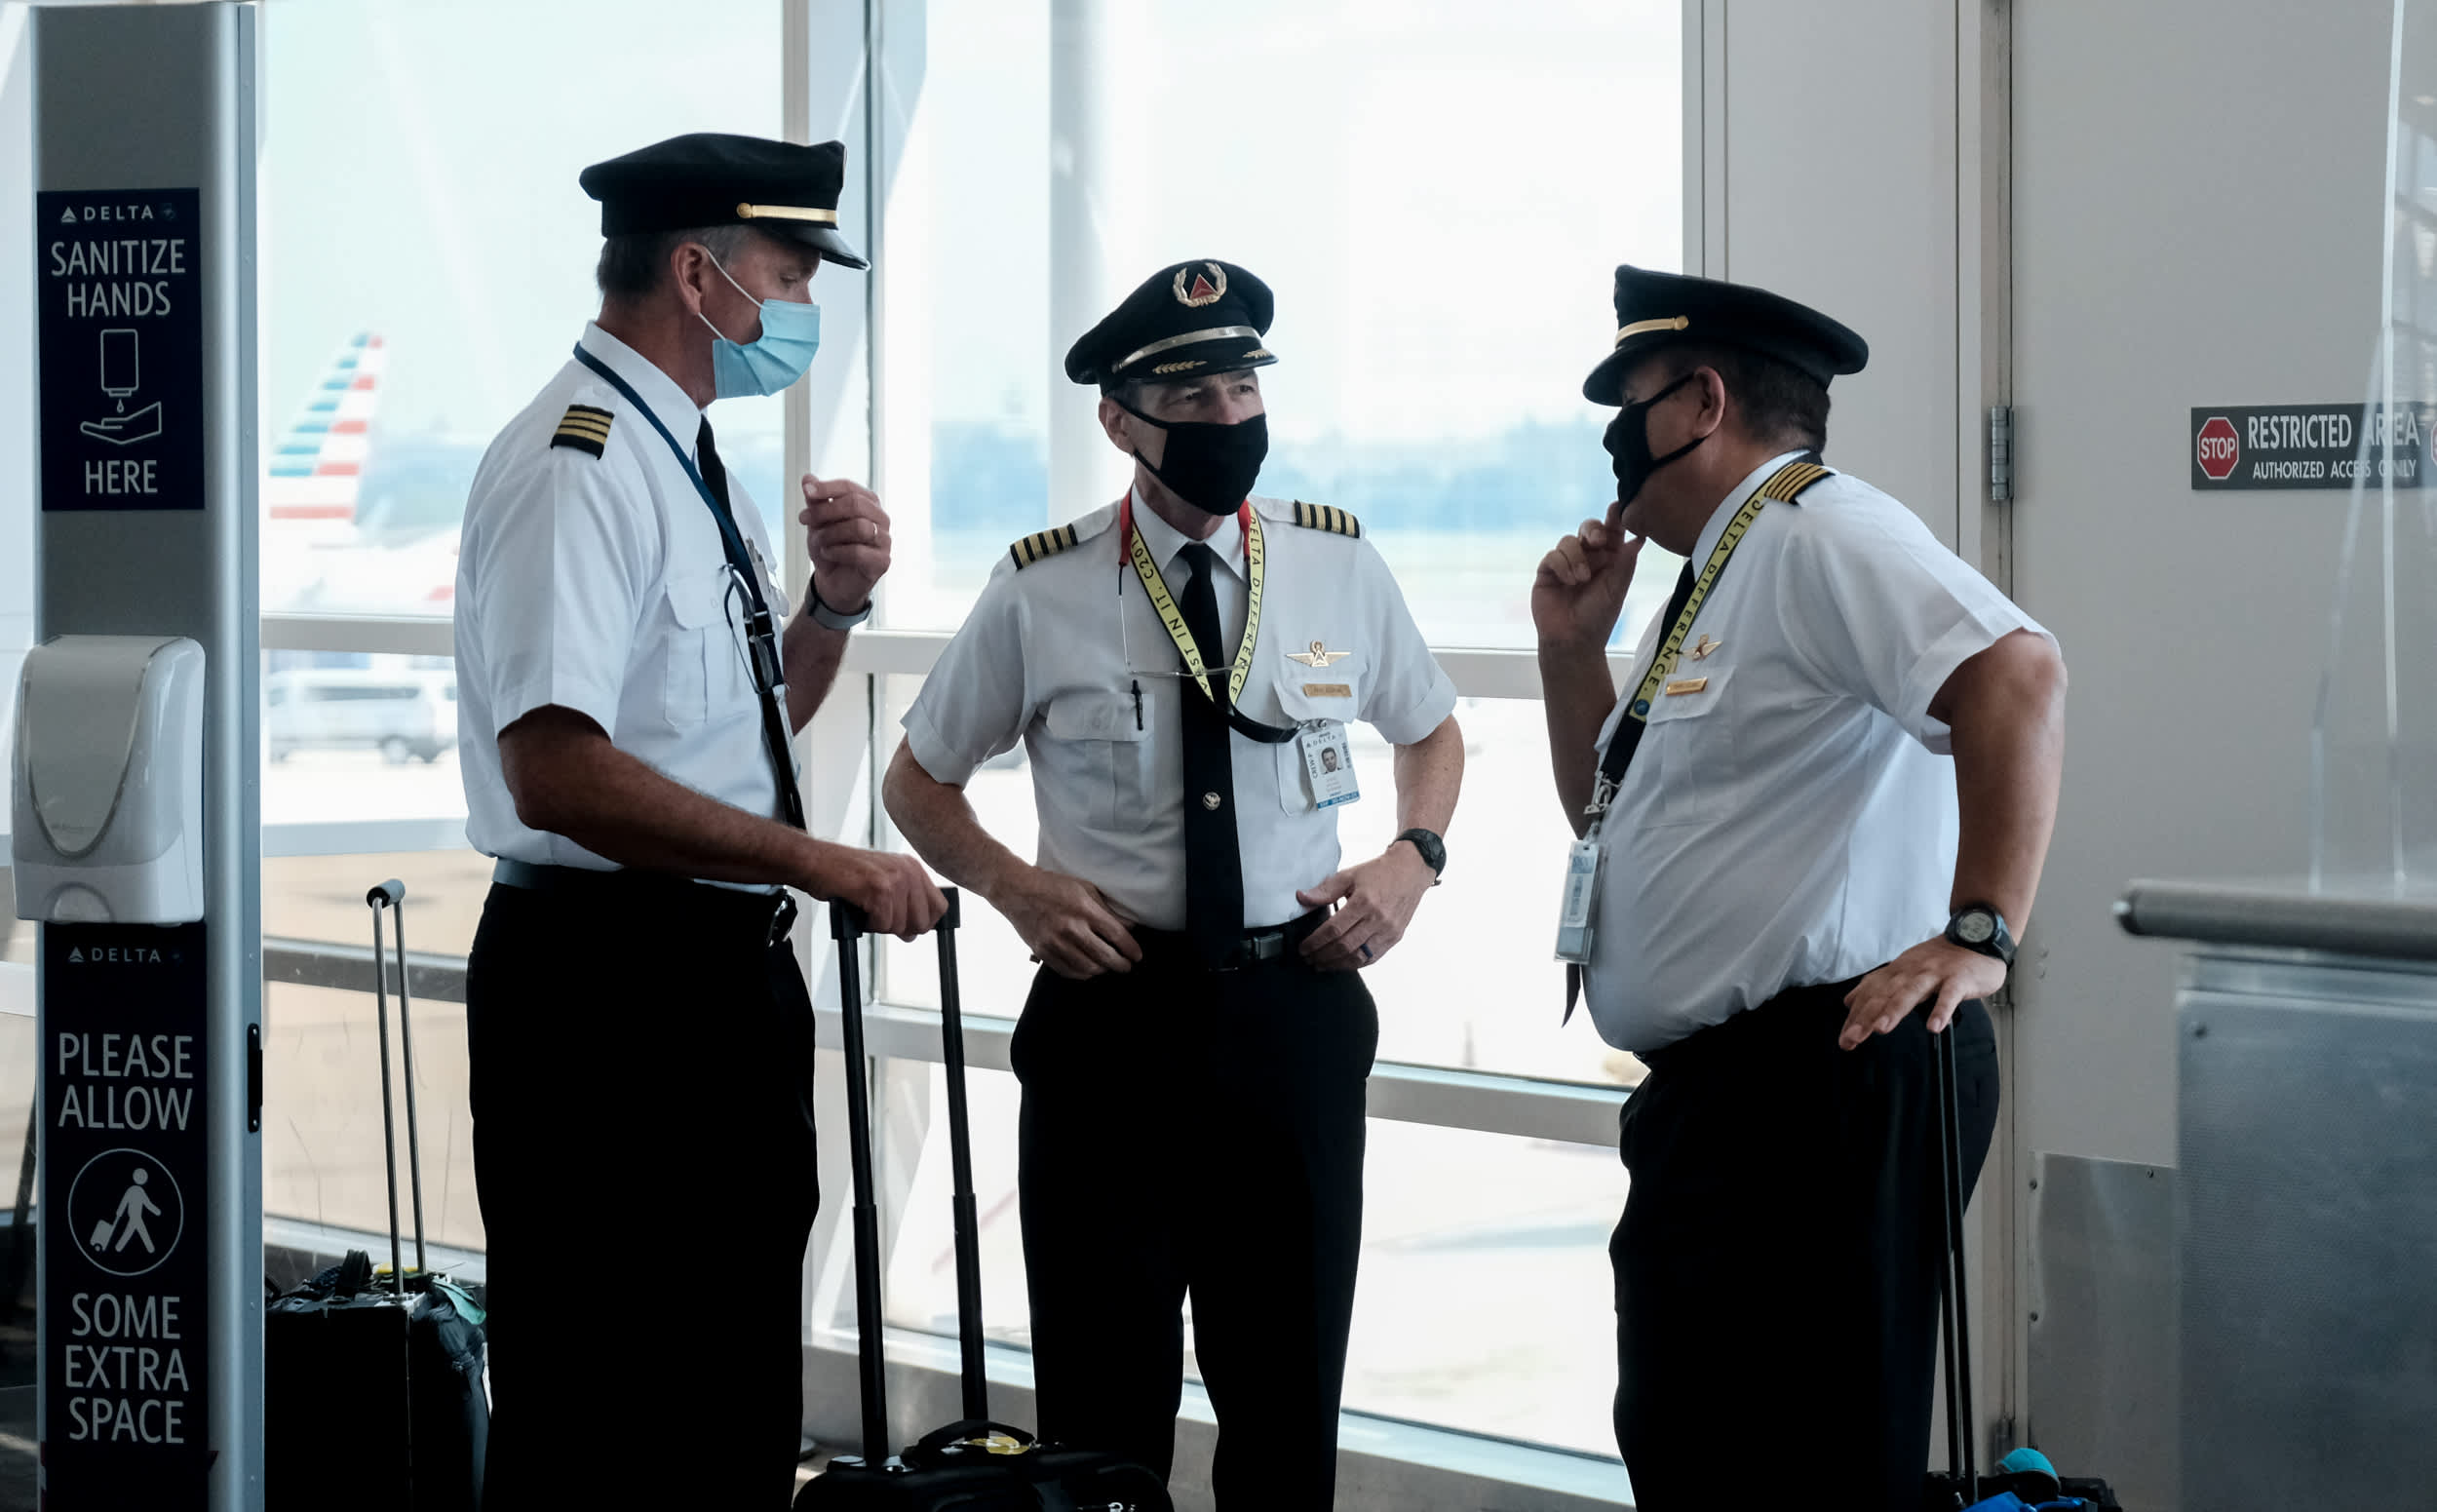 delta-plans-to-bring-back-400-pilots-signaling-optimism-about-future-air-travel